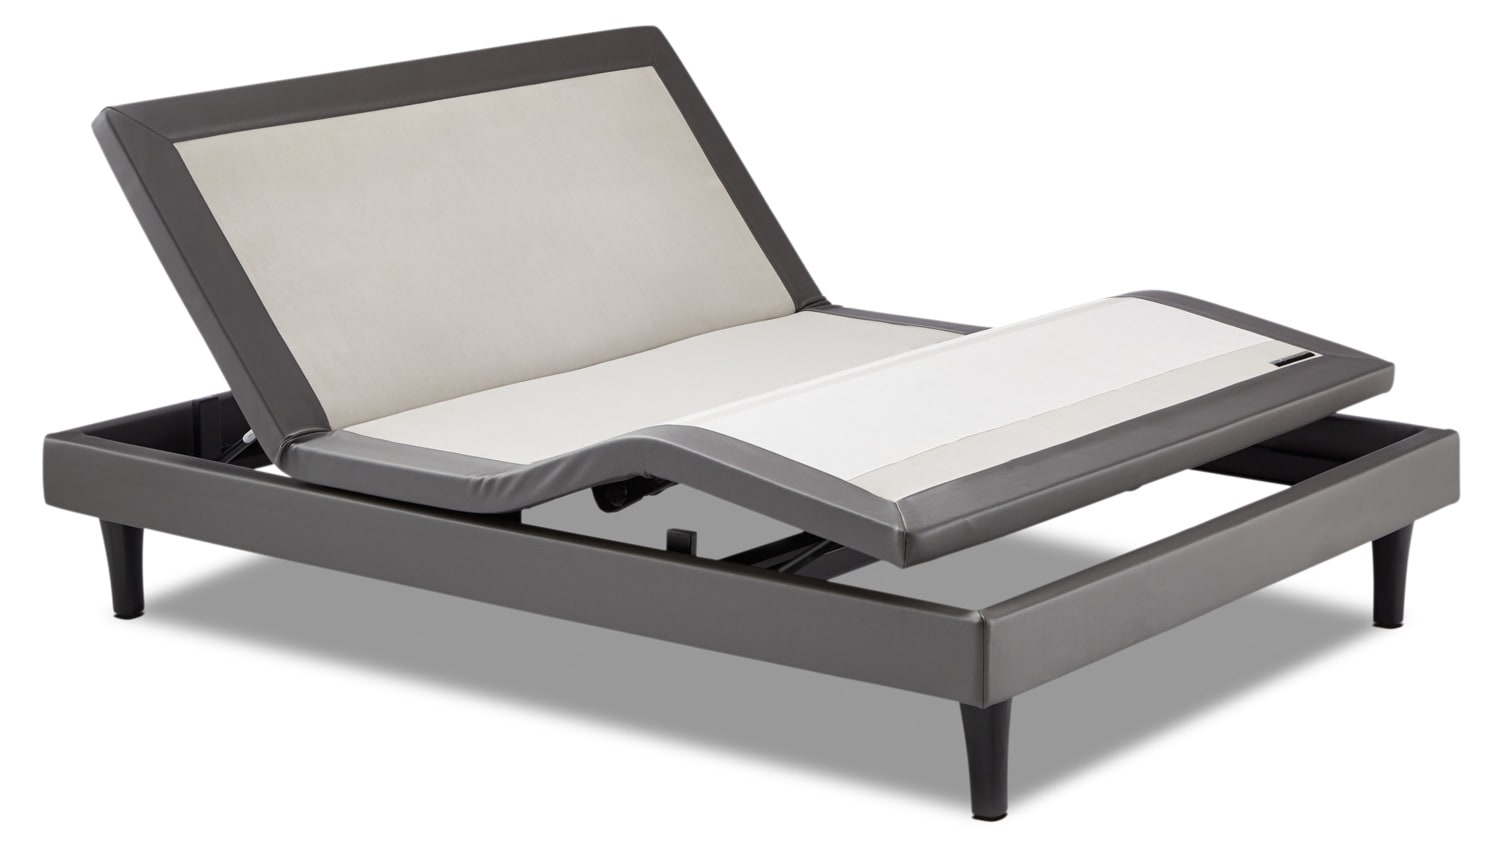 Mattresses and Bedding - Serta iComfort Motion Perfect® 3 Adjustable Queen Base